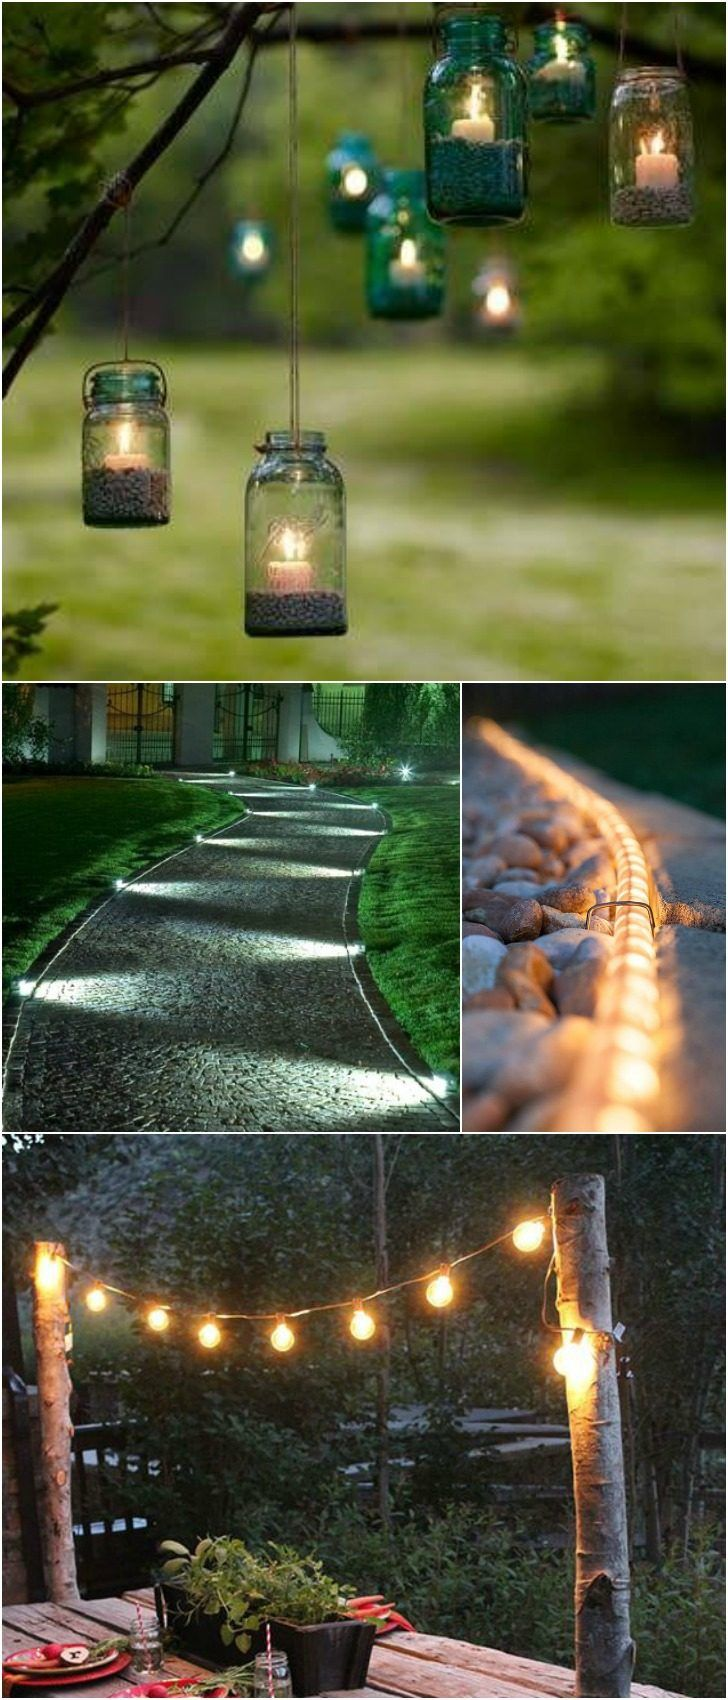 10 Outdoor Lighting Ideas For Your Garden Landscape 5 Is Really Cute 1001 Gardens Backyard Lighting Backyard Landscape Design